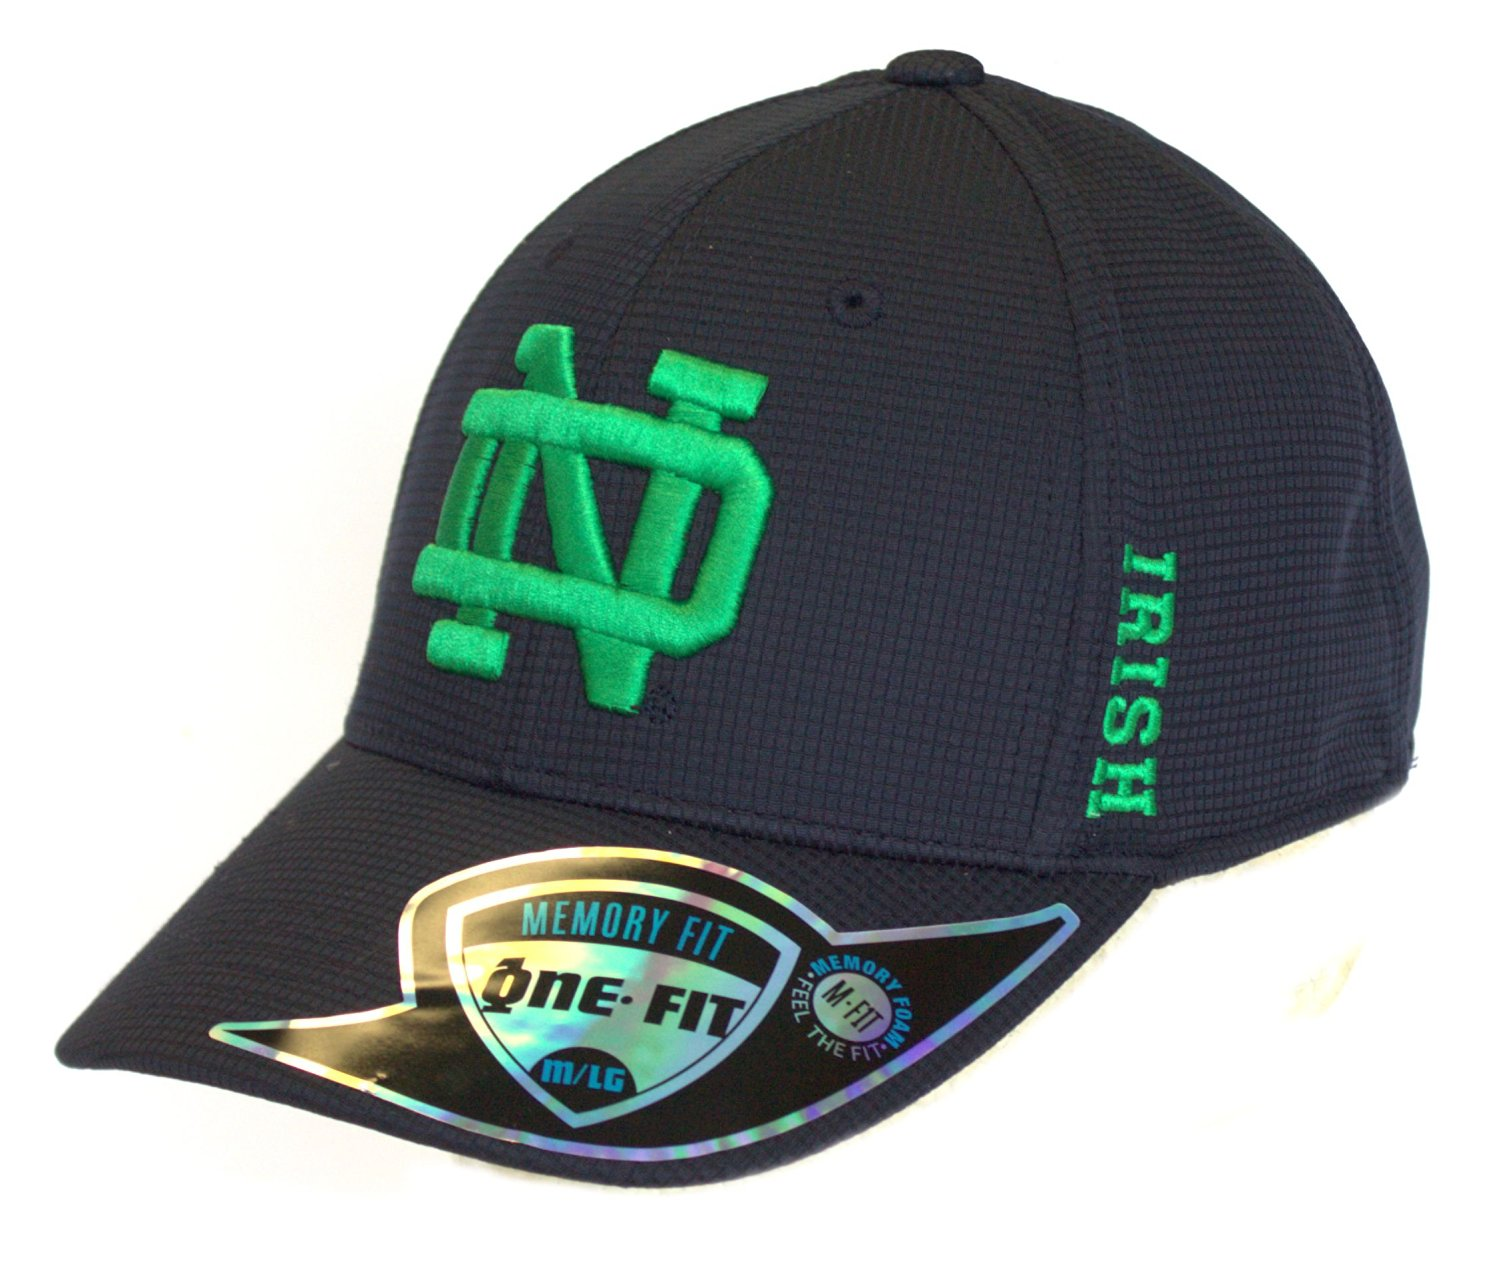 82f8c5c79cf NCAA Licensed Notre Dame Textured Memory Fit One-Fit Baseball Hat ...